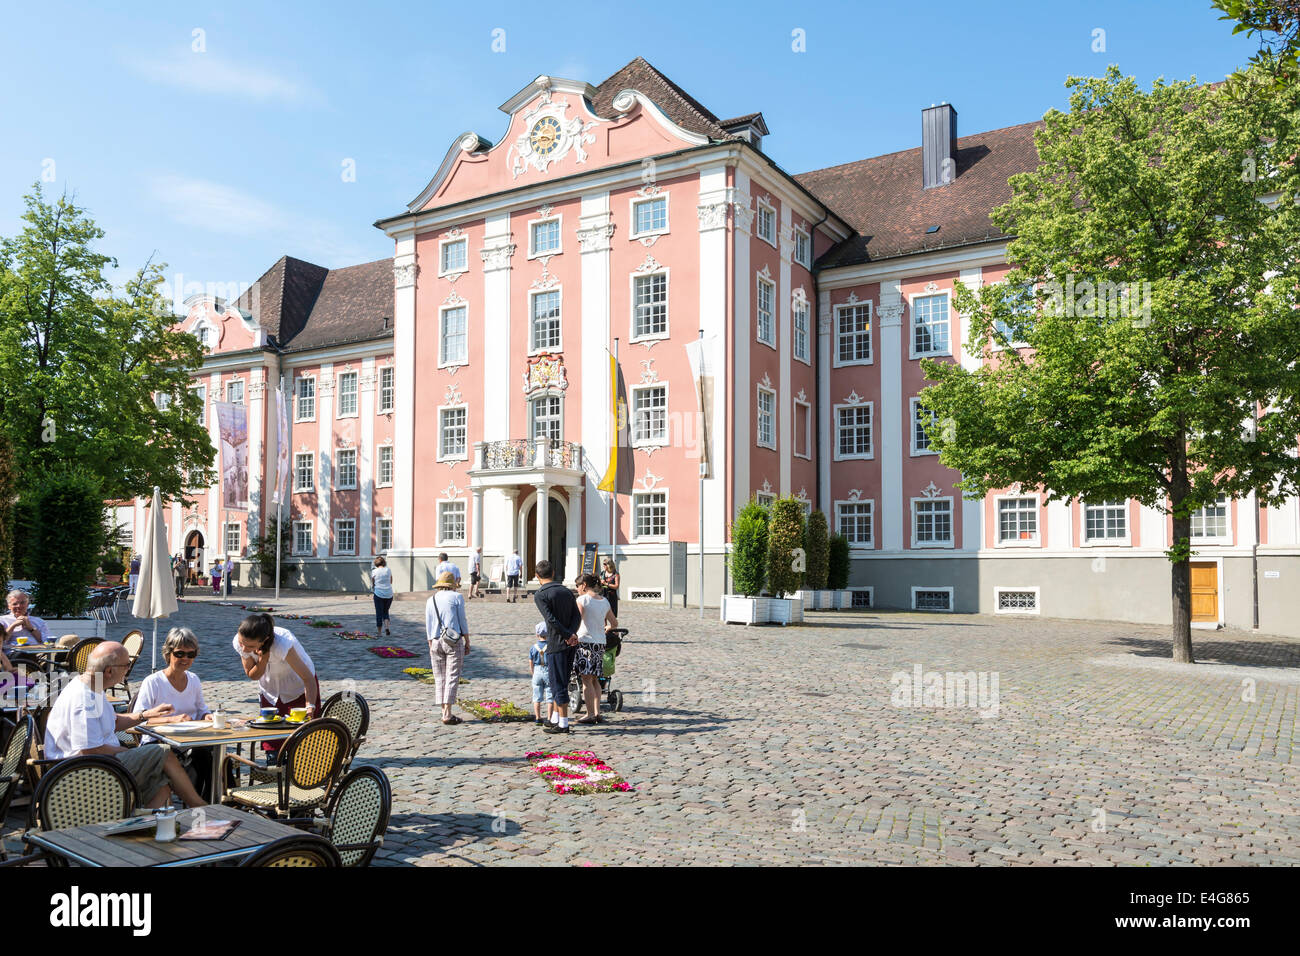 MEERSBURG, GERMANY - JUNE 19: Tourists at the new castle of Meersburg, Germany on June 19, 2014. The new castle - Stock Image